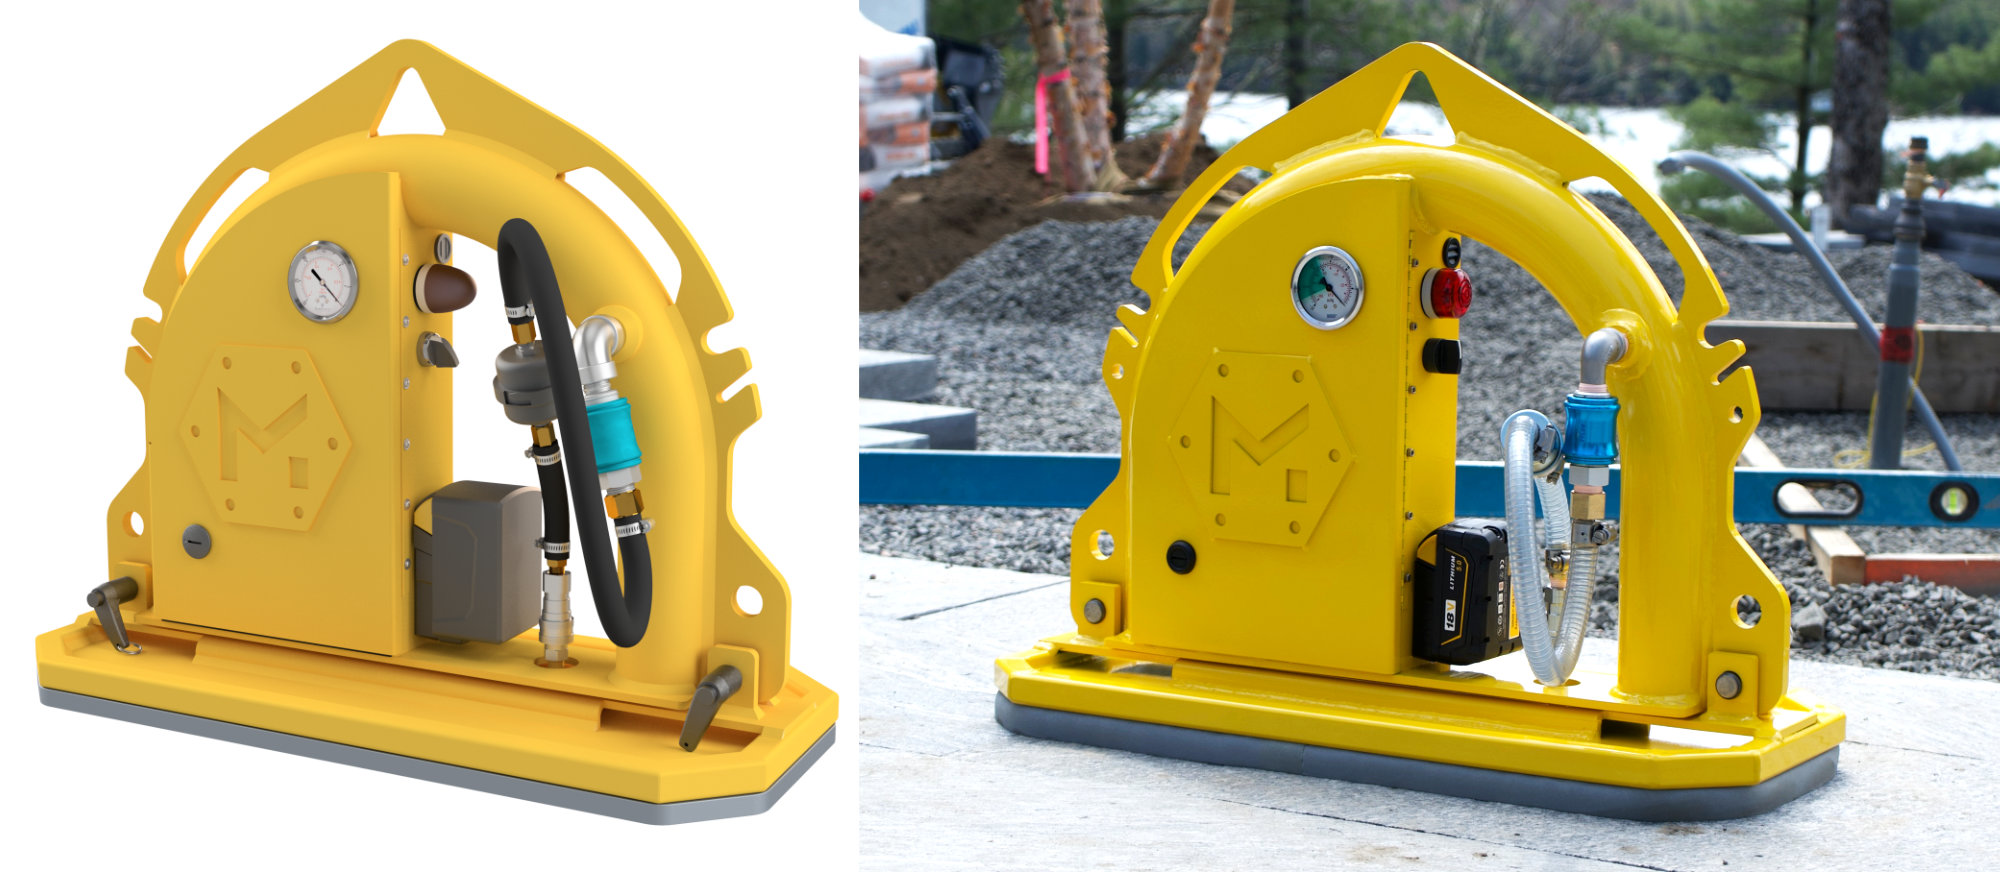 A 3D CAD model of the Mini Mk2 lifter beside the real product.